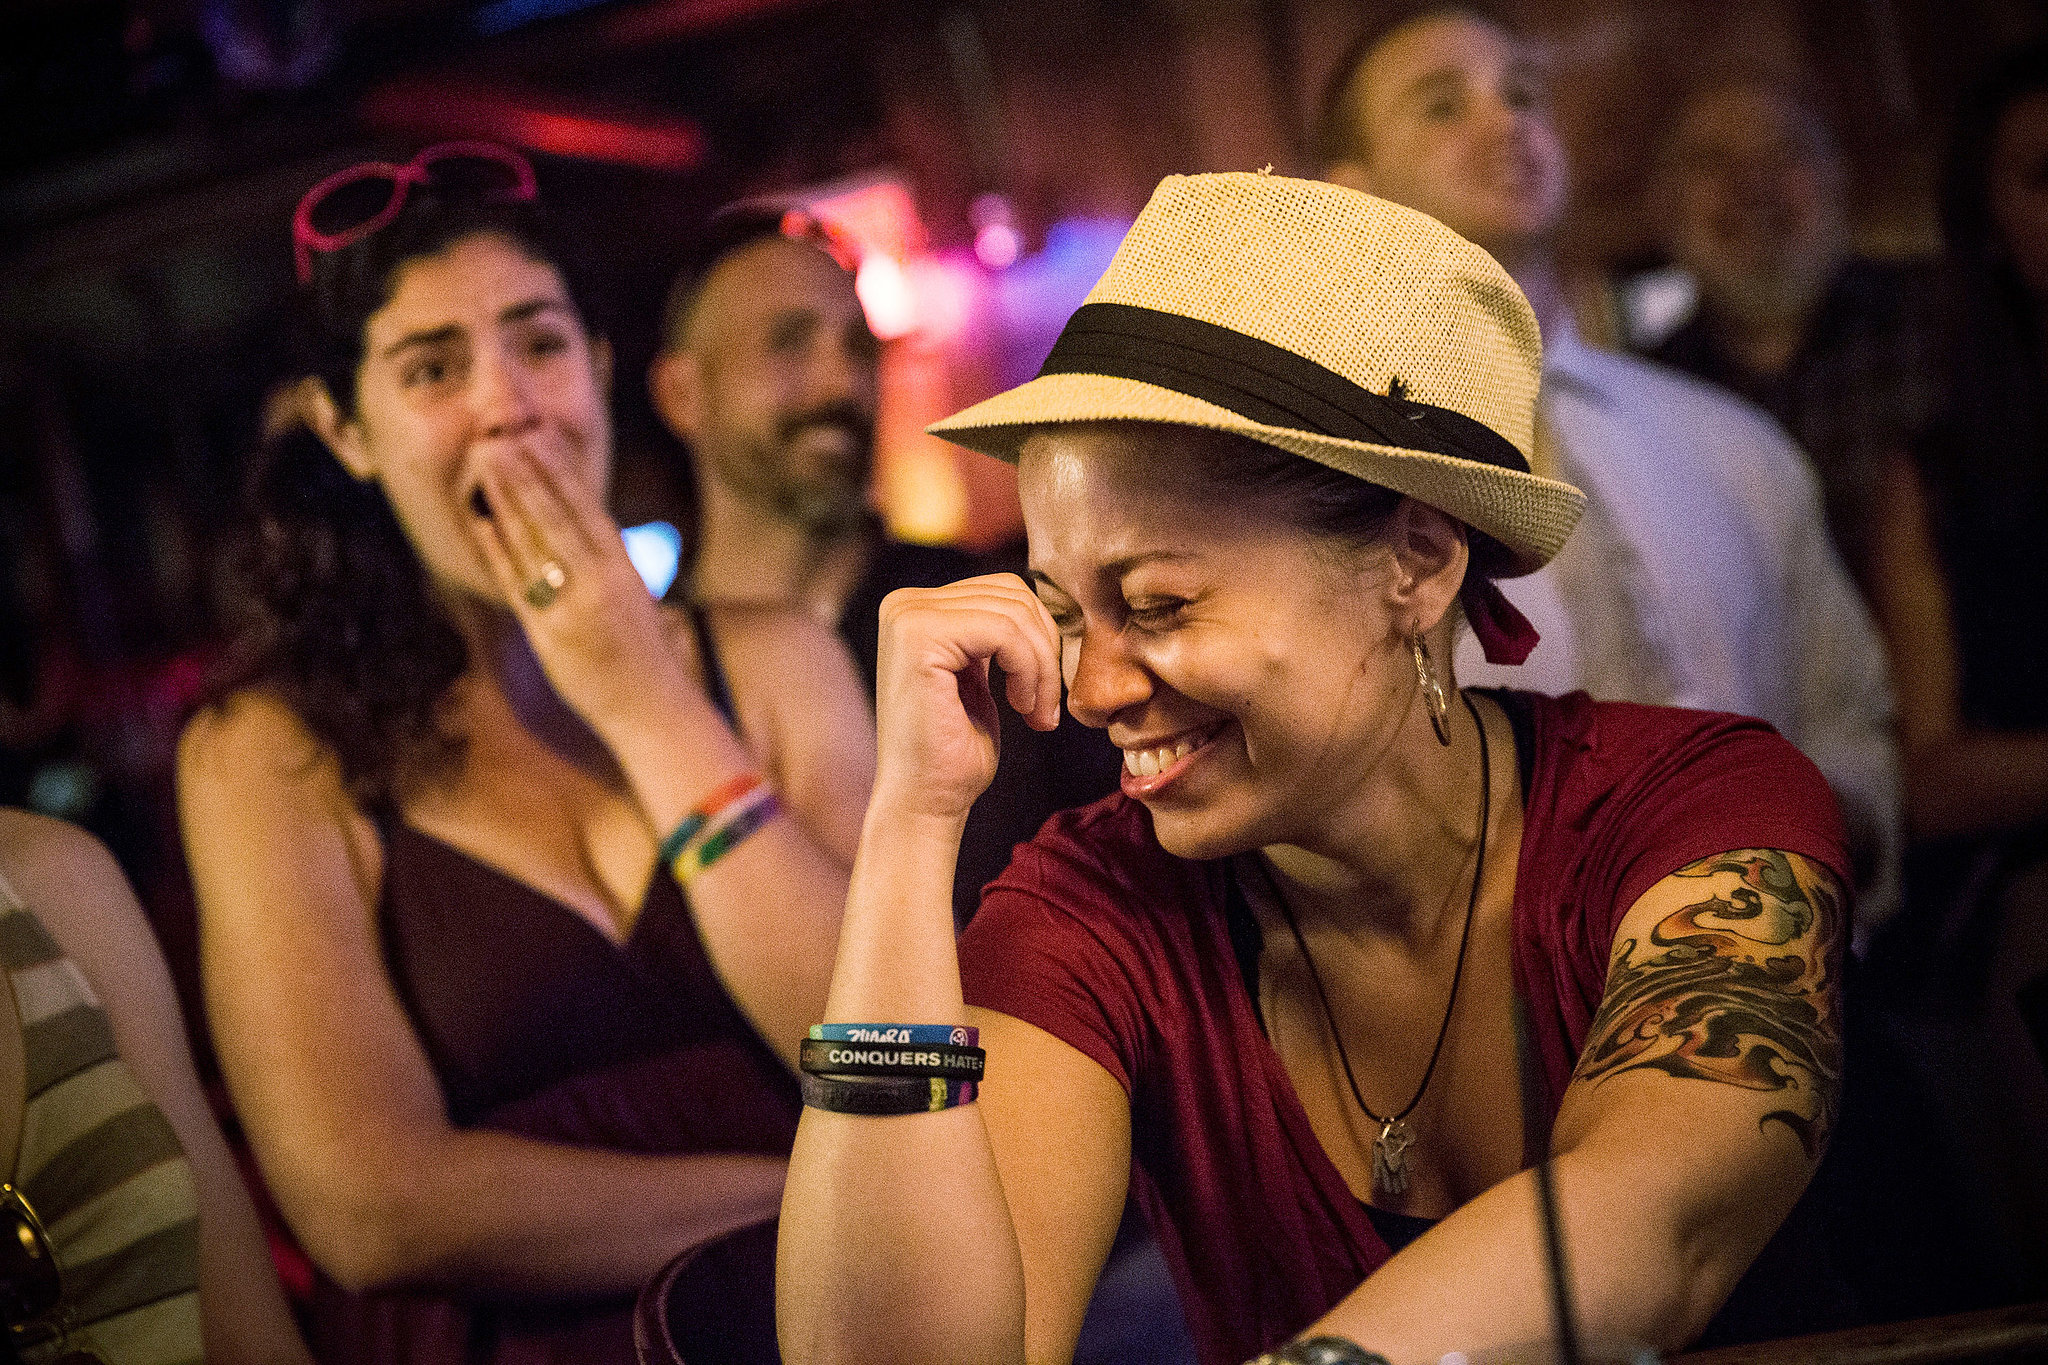 In an NYC bar, backers smiled after hearing the key gay marriage rulings on Wednesday.